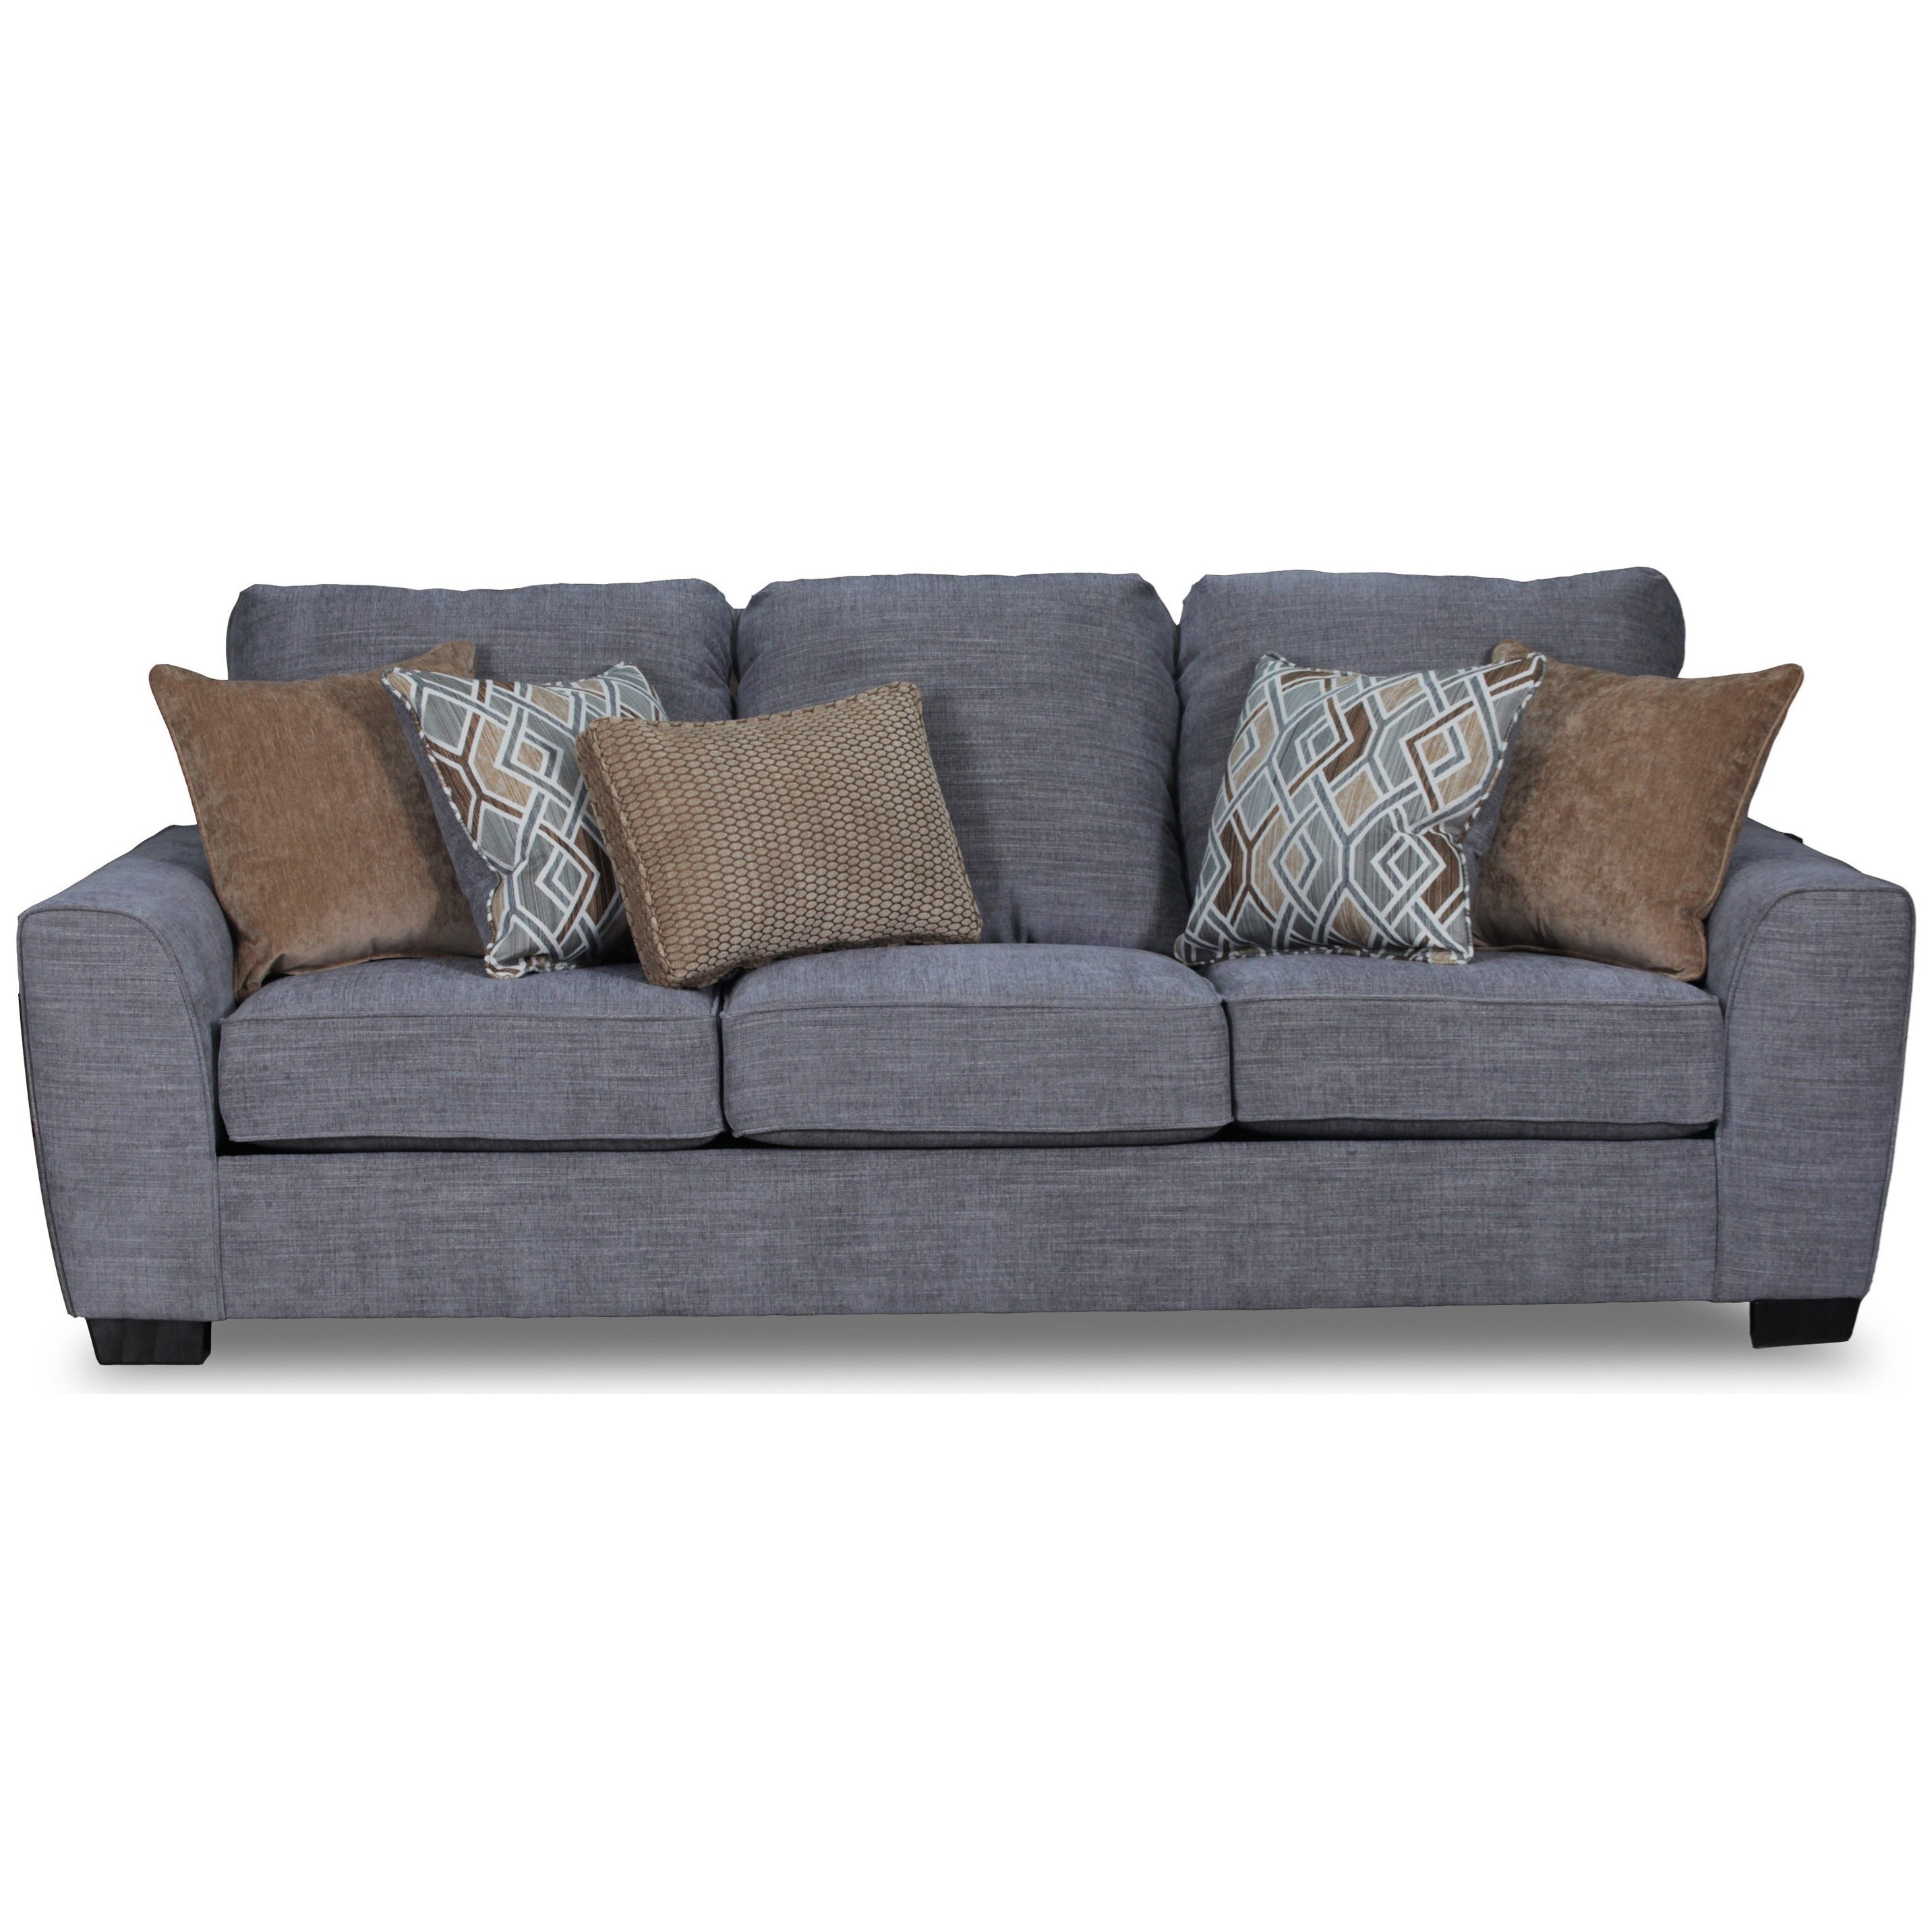 9770BR Sofa by United Furniture Industries at Dream Home Interiors